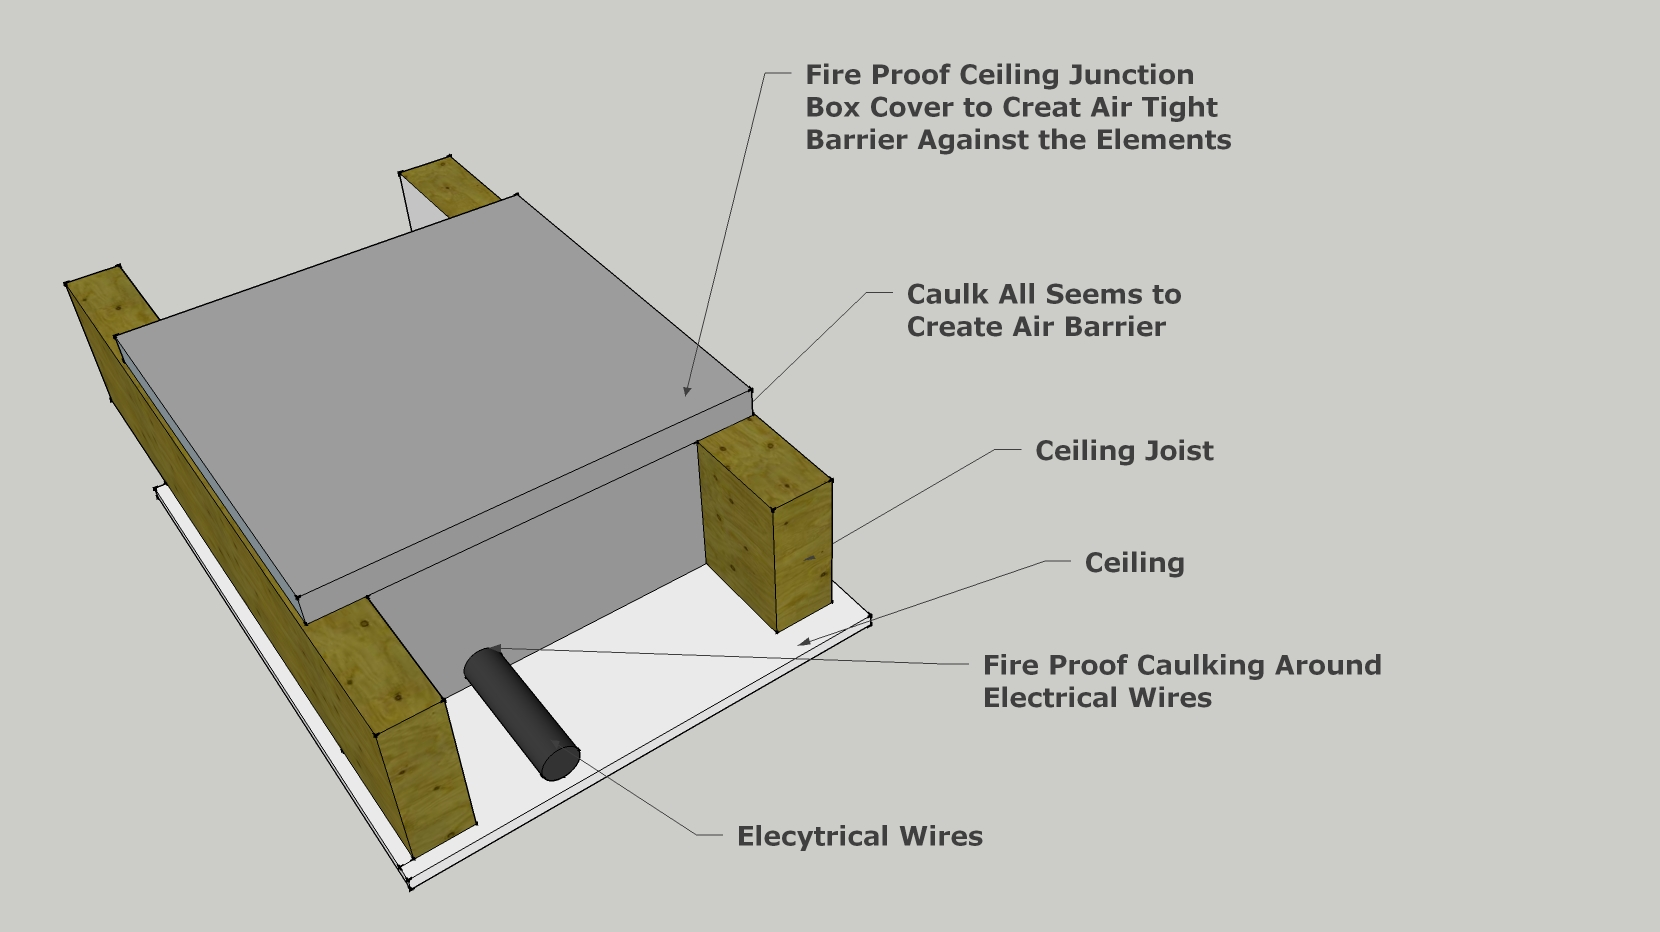 StLouis Renewable Energy: Fire Proof-Air Tight-Electrical Junction ...